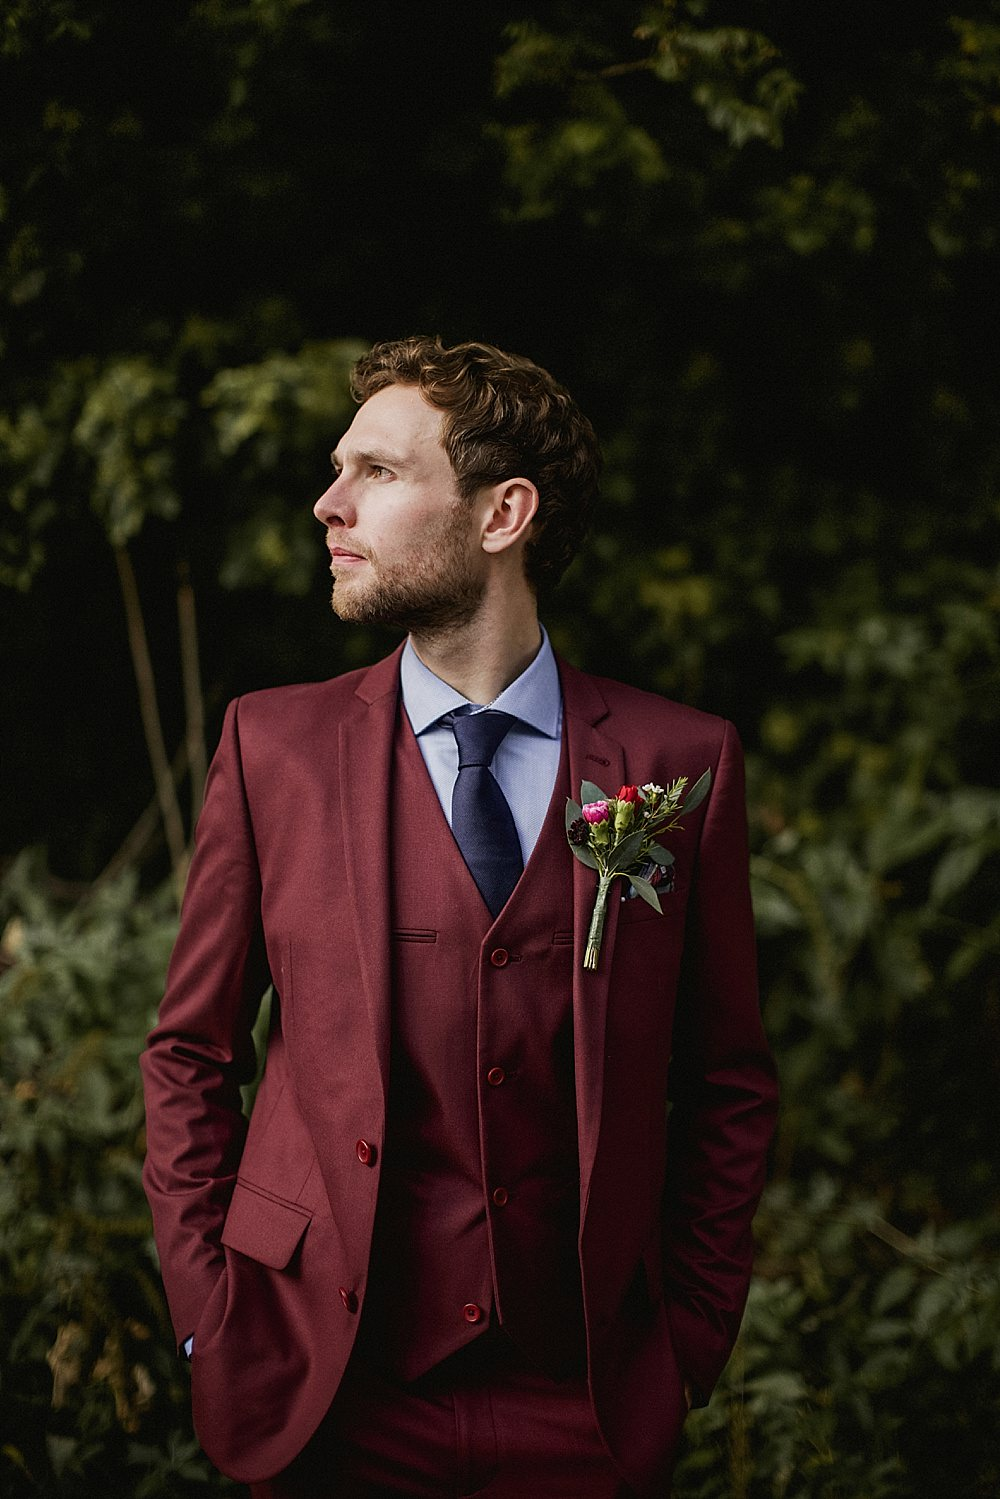 Groom Suit Burgundy Navy Tie Abbeydale Picture House Wedding We Are Da Silva